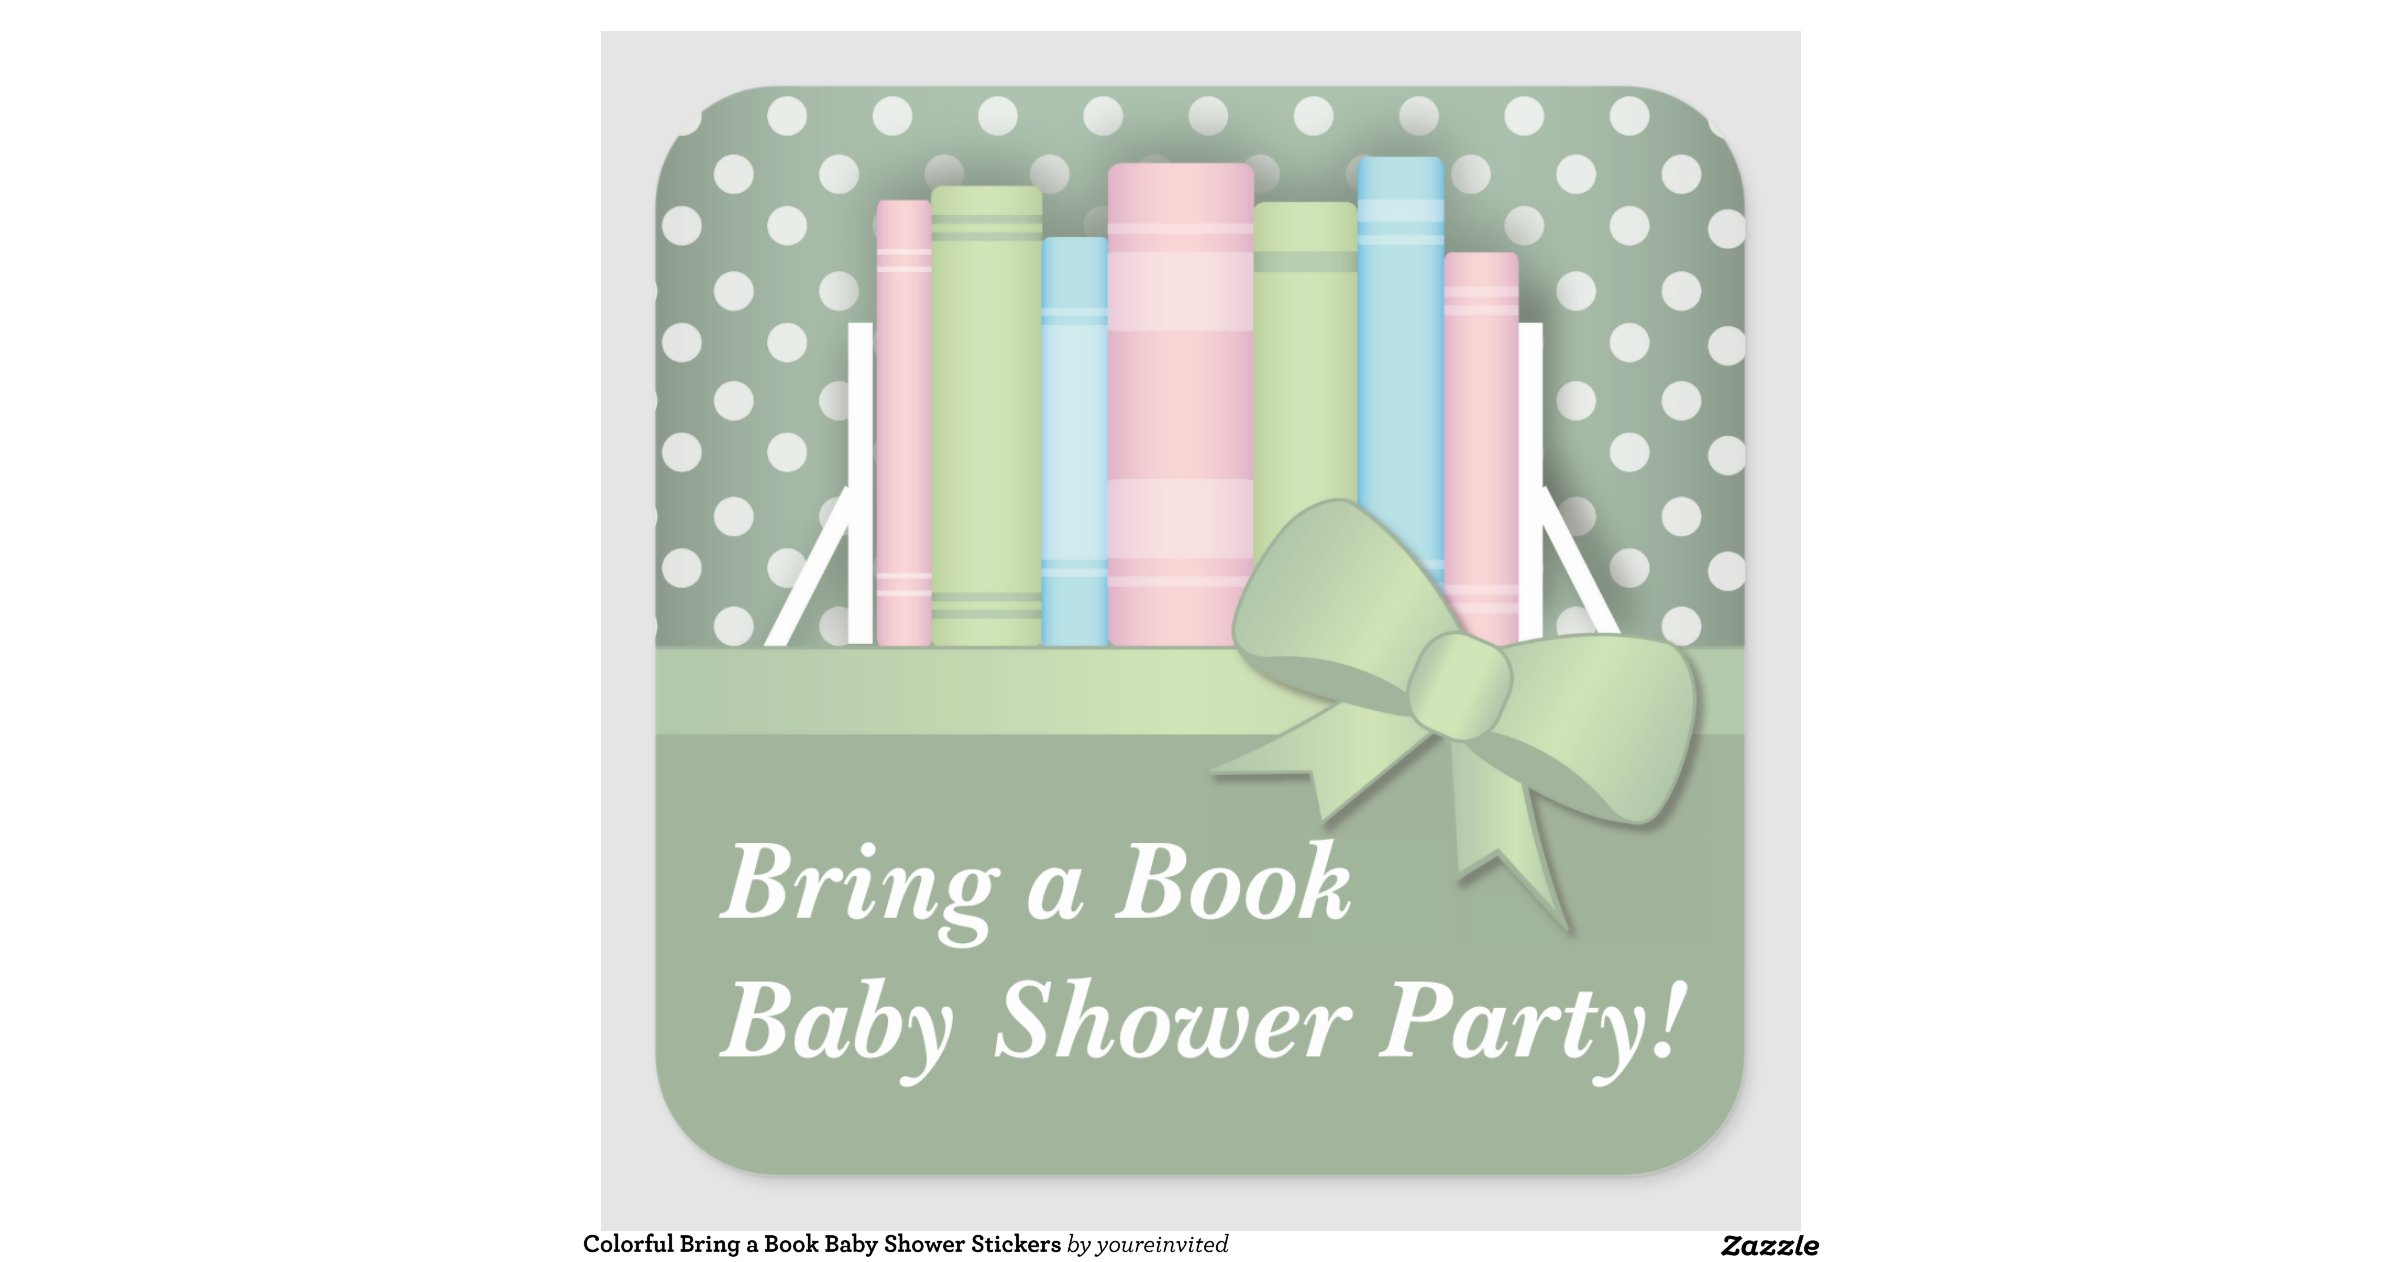 colorful bring a book baby shower stickers zazzle